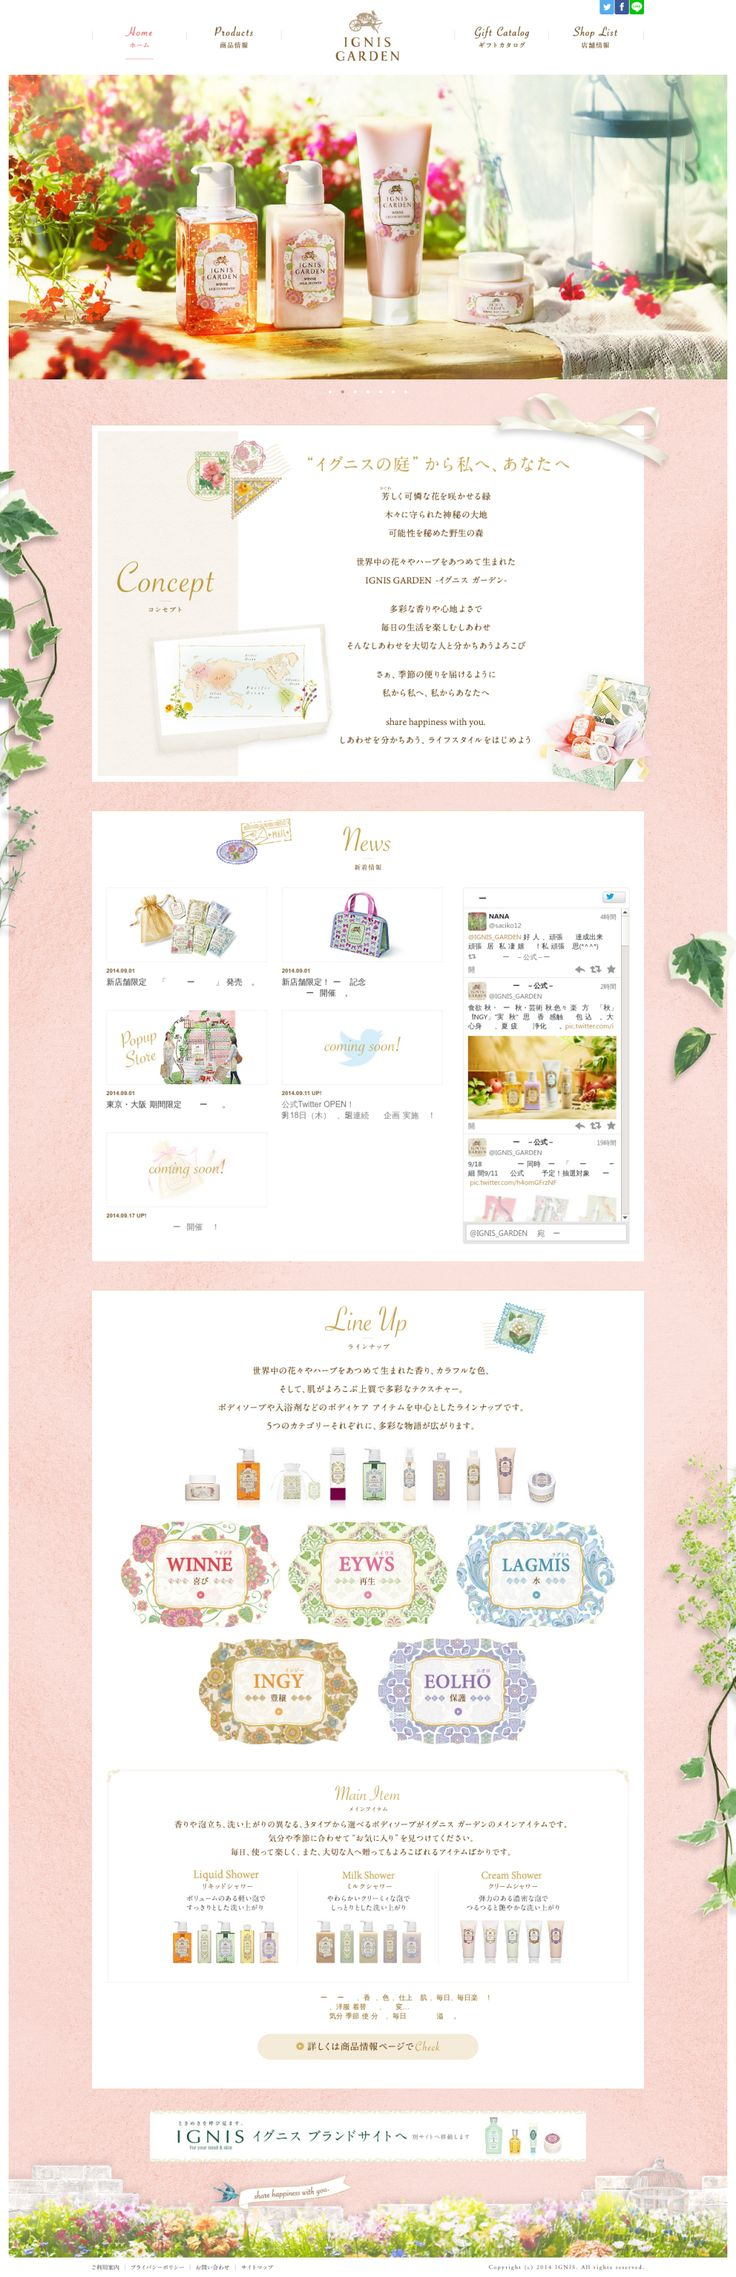 Website 'http://www.ignis-garden.jp/' snapped on Snapito.com